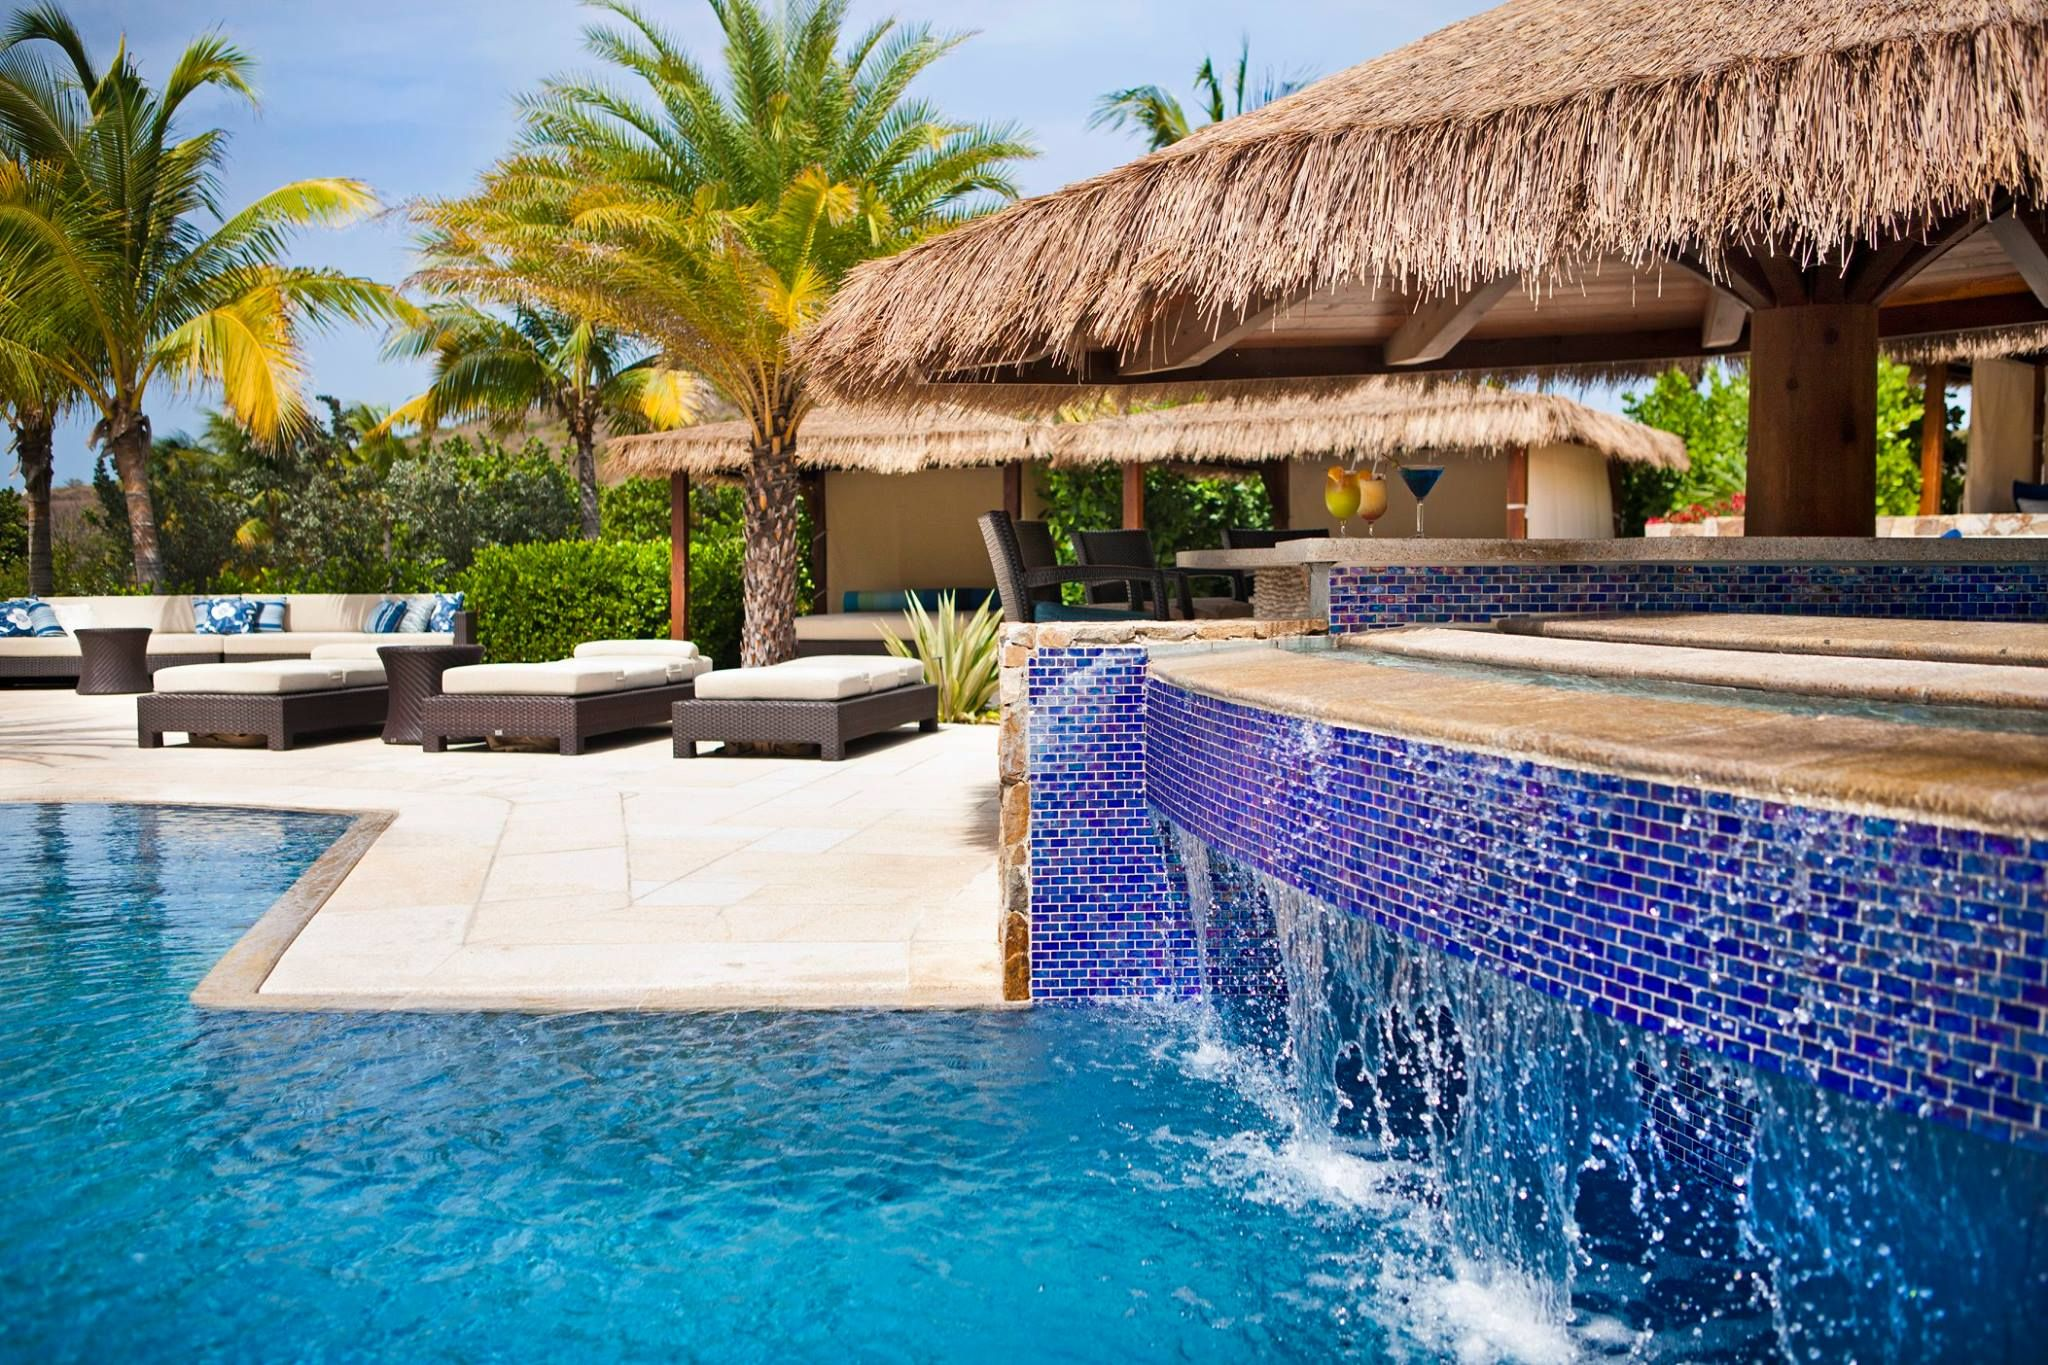 Triple Tiered Vanishing Edge Slot Overflow Glass Tile Mosaic Swimming Pools Oil Nut Bay Bvi Paolo Benedetti W Mosaic Pool Luxury Pools Pool Water Features